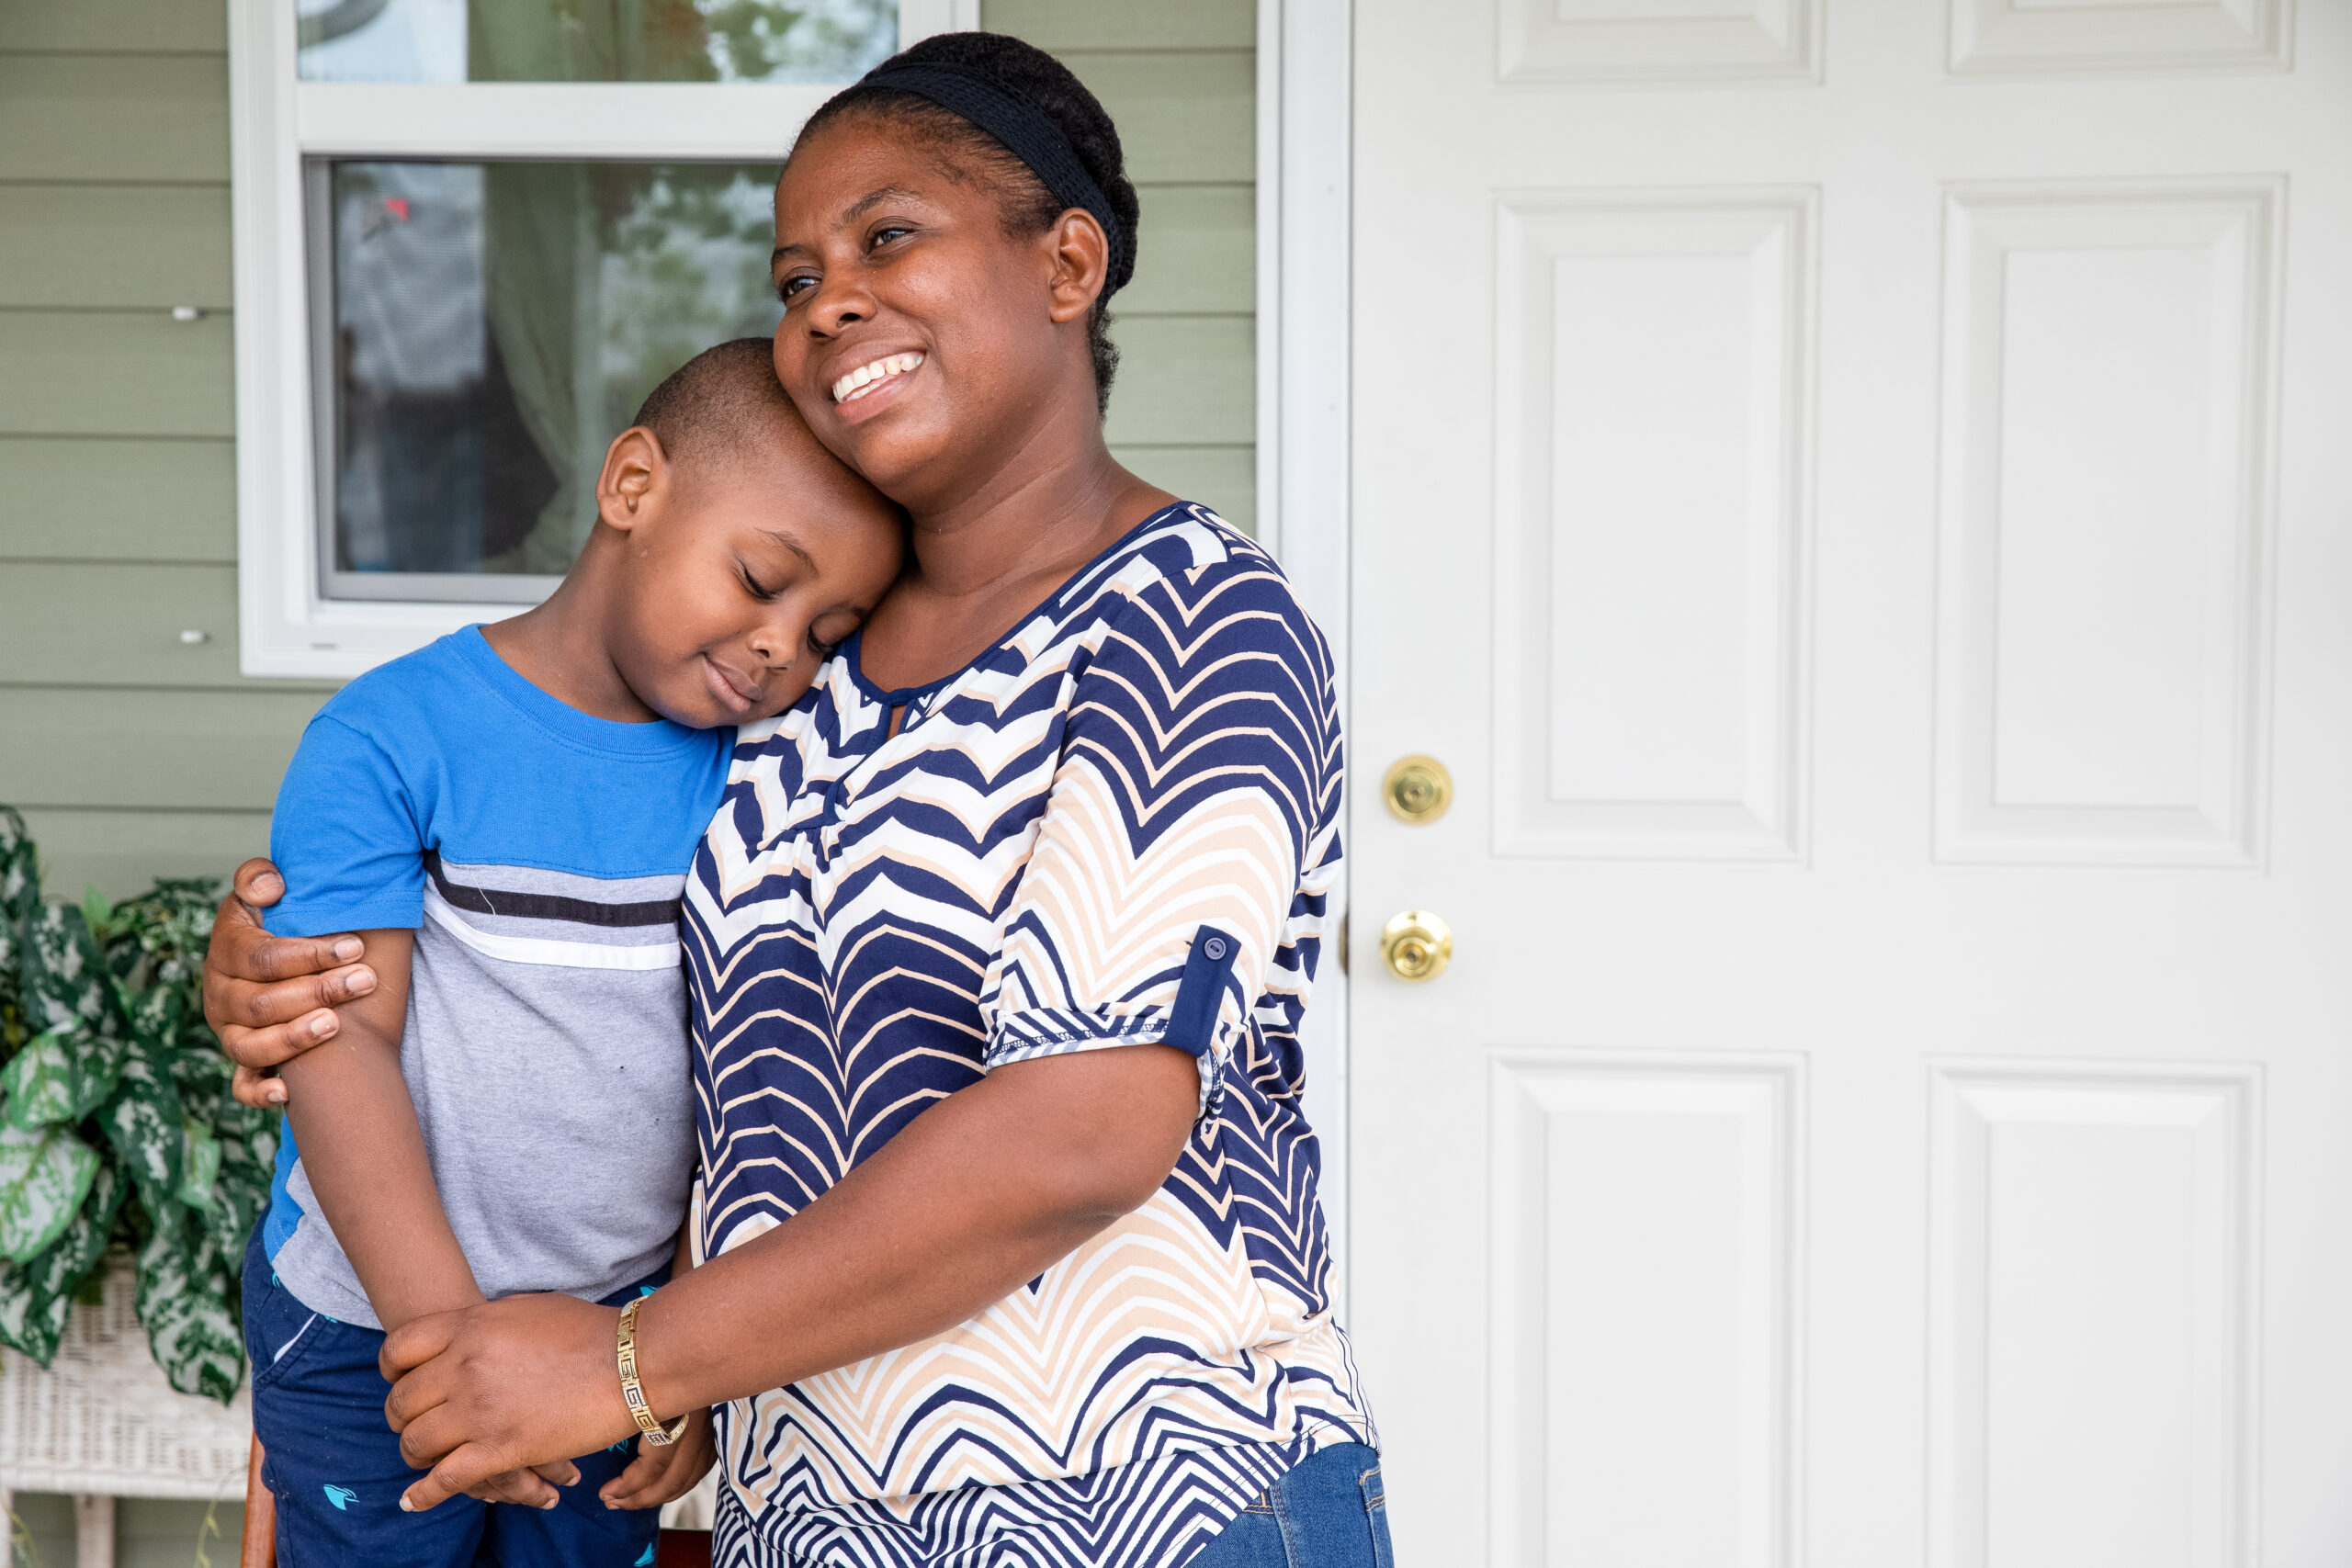 USFL-18-12486-JA.jpg IMMOKALEE, FLORIDA, USA (07/24/18)-Magadala Julien, with her son Zachary (3), was able to work with Habitat for Humanity of Collier County to build her home after the apartment she was renting was severely damaged during Hurricane Irma. © Habitat for Humanity International/Jason Asteros